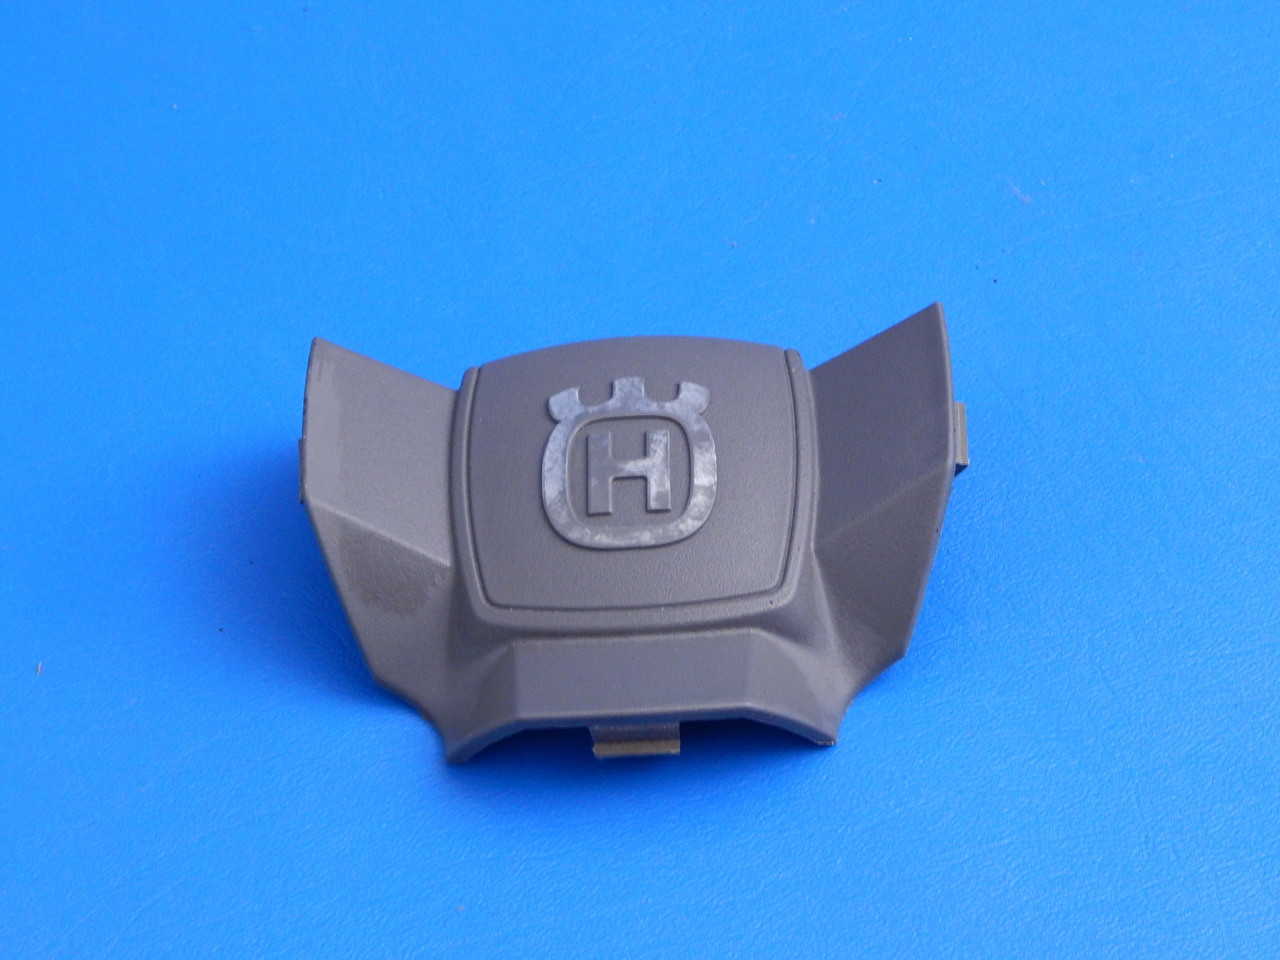 hight resolution of husqvarna yth2348 riding lawn mower steering wheel insert cap 532415987 ice cold beer appliance parts